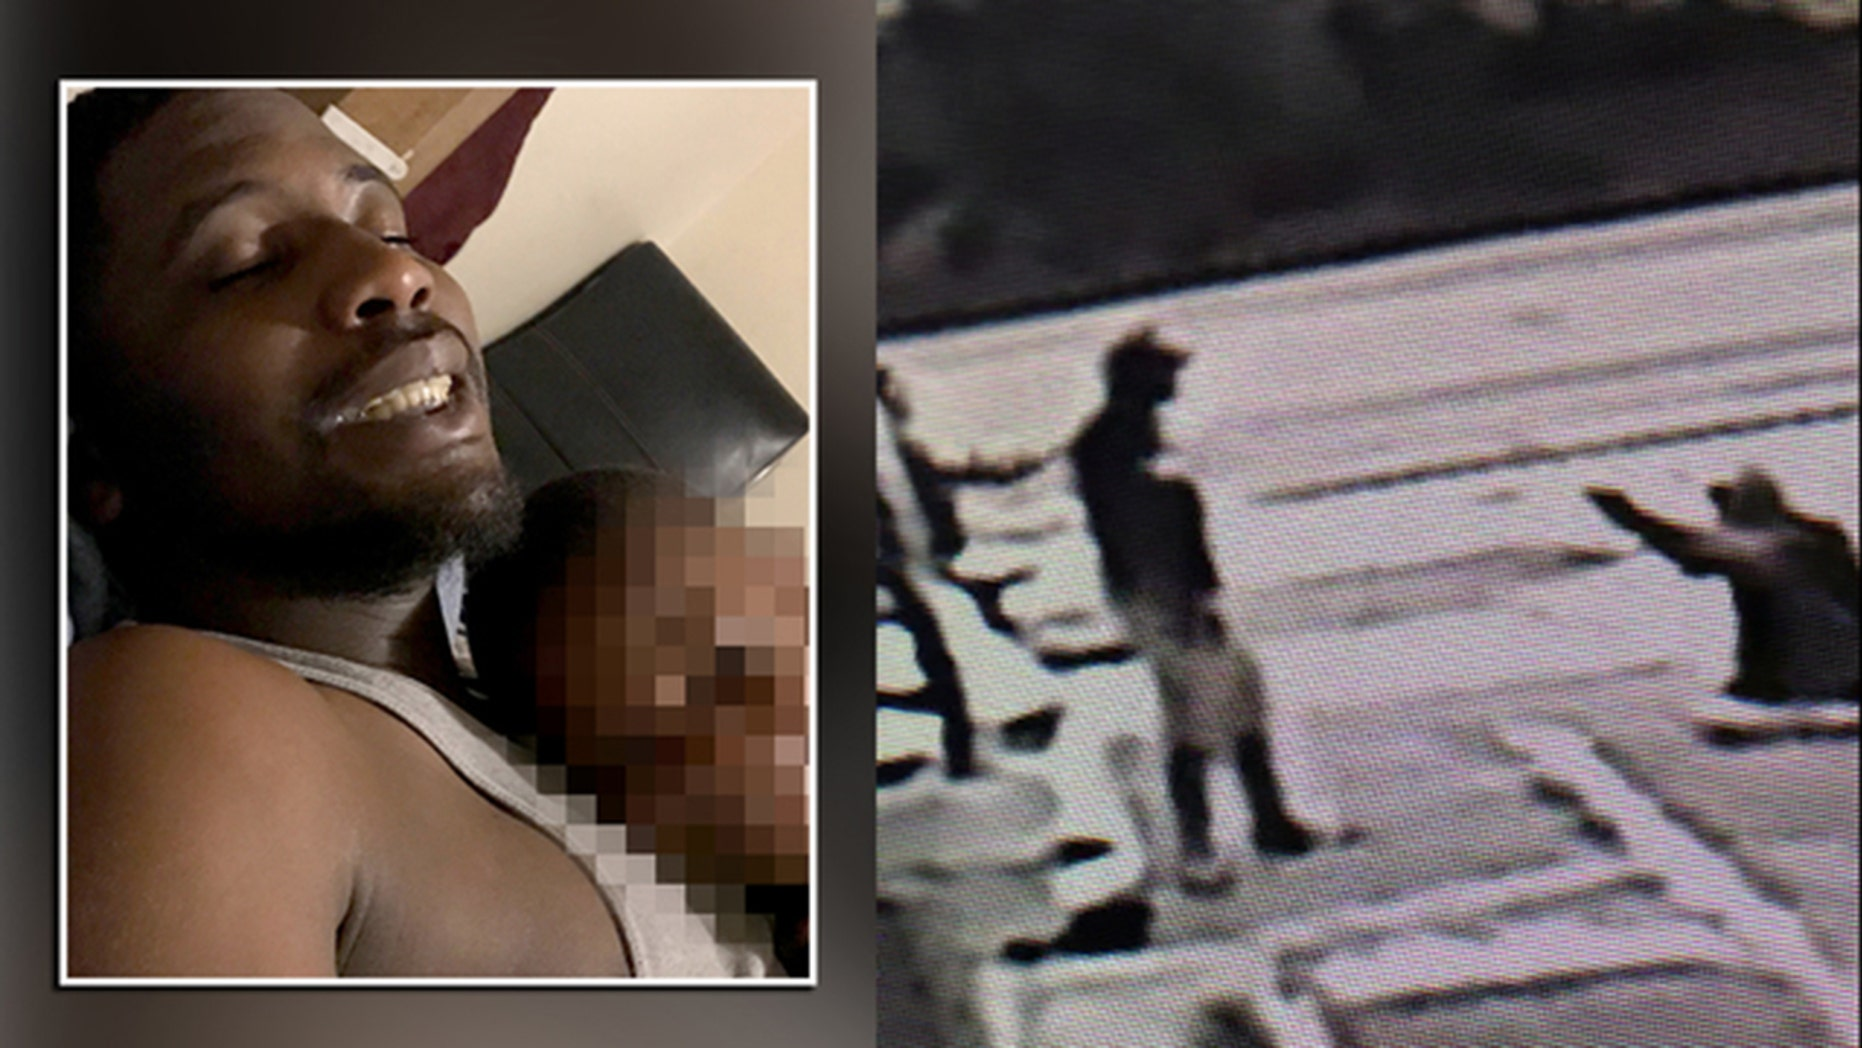 """28-year-old Markeis McGlockton was shot and killed in a dispute over a parking spot in Clearwater, Fla., Thursday. The sheriff who investigated said the shooter was justified under the state's """"Stand Your Ground"""" law."""